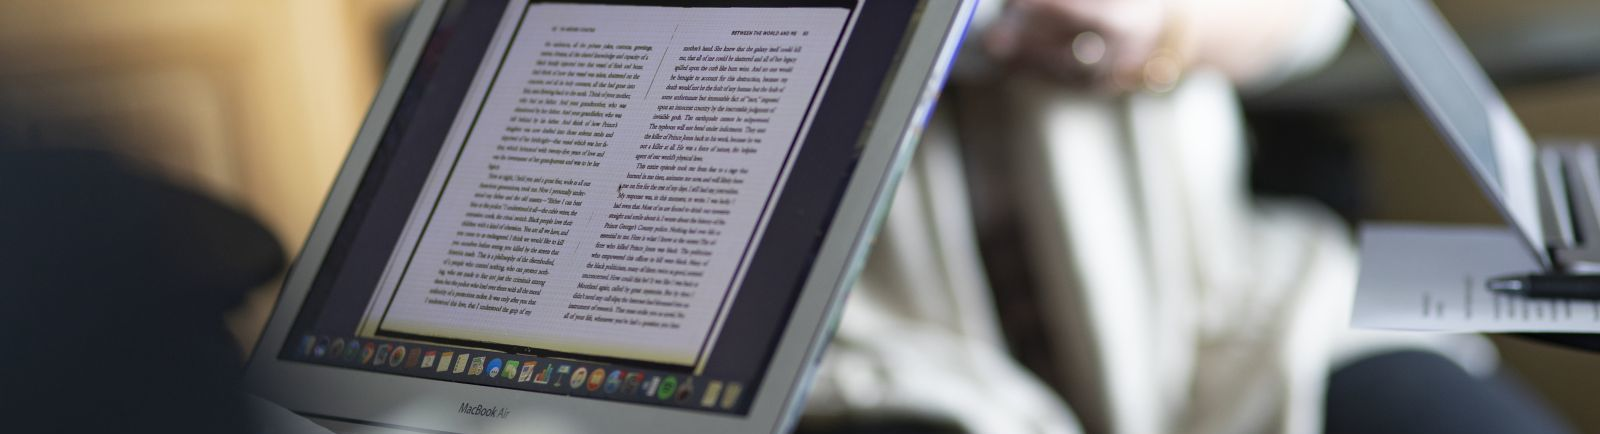 Laptops with screens full of text documents are seen in a classroom setting.